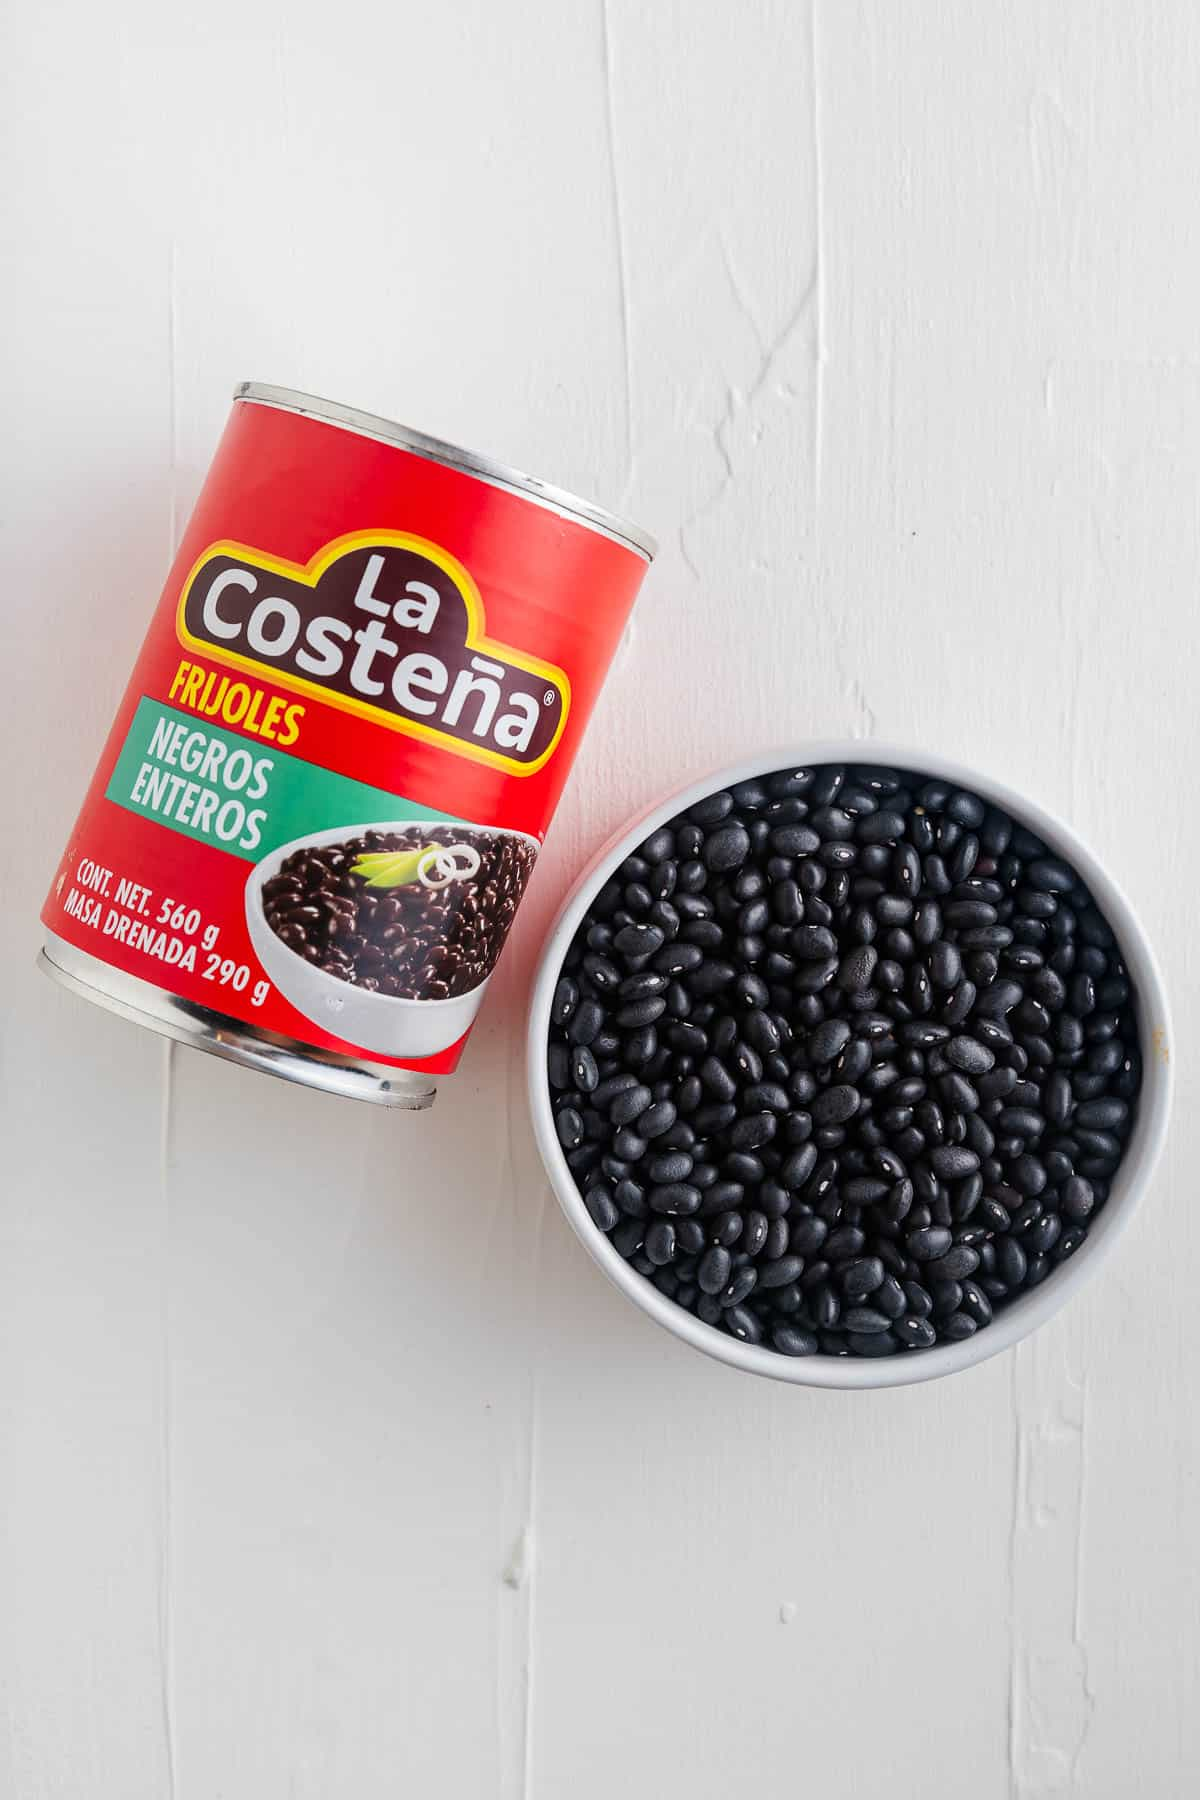 Dry Black Beans and Canned Black Beans